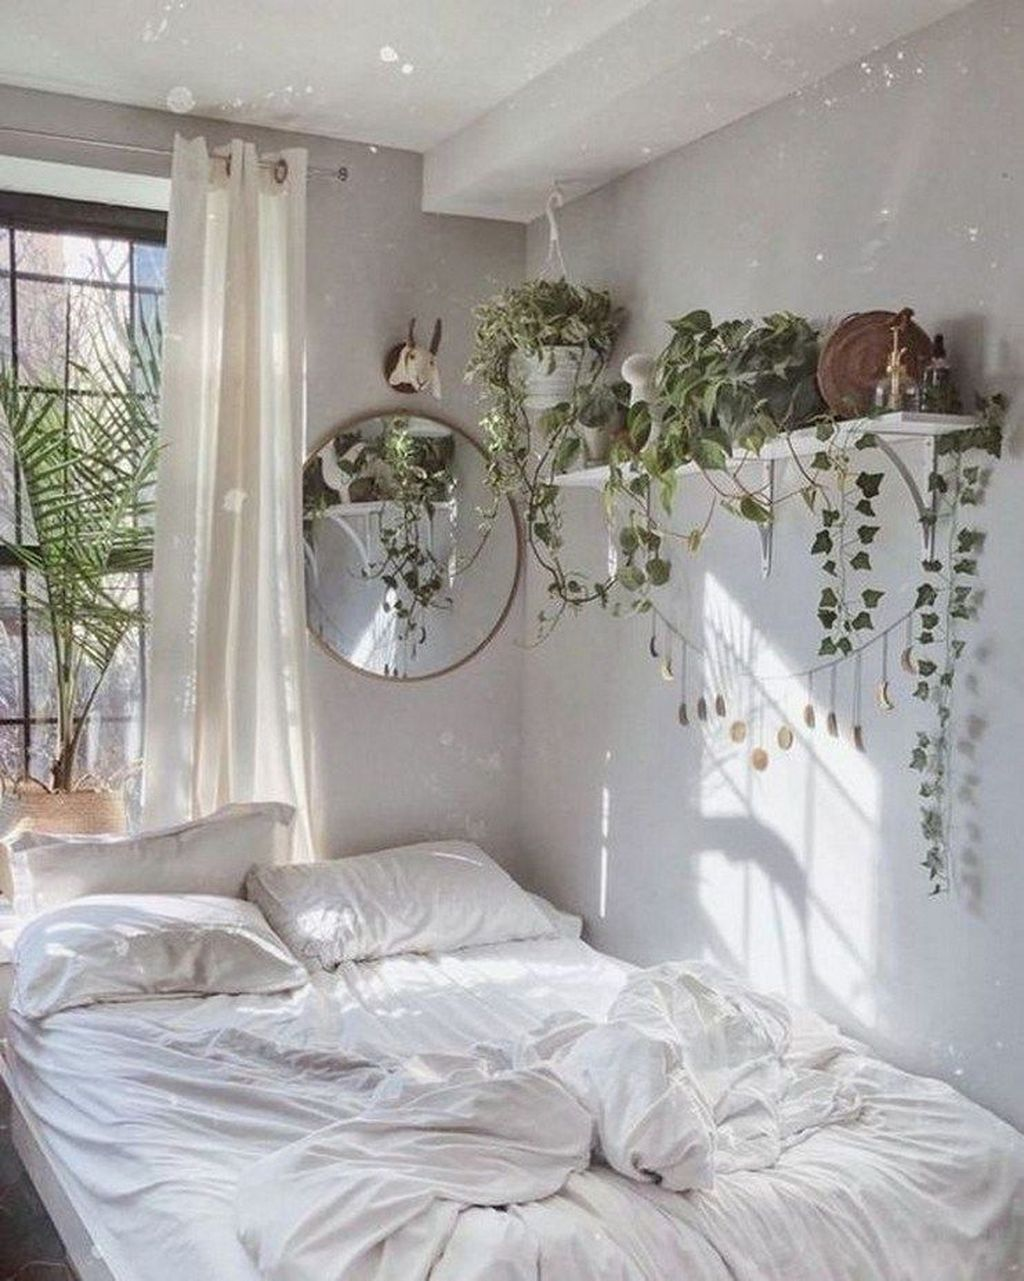 Lovely Bedroom Decor With Plant Ideas 23